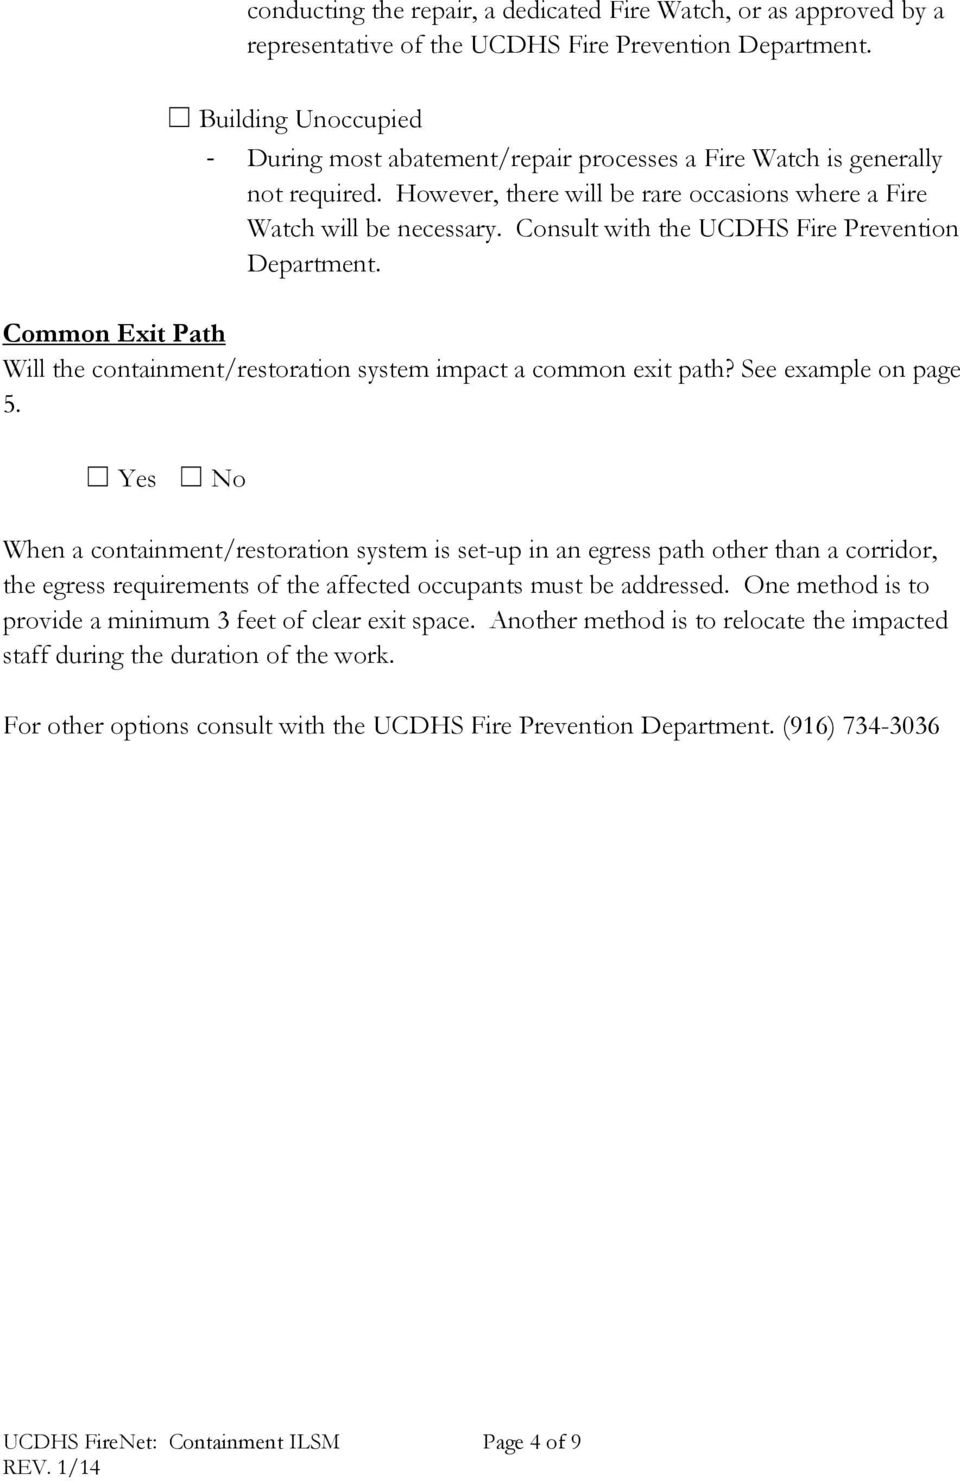 Consult with the UCDHS Fire Prevention Department. Common Exit Path Will the containment/restoration system impact a common exit path? See example on page 5.